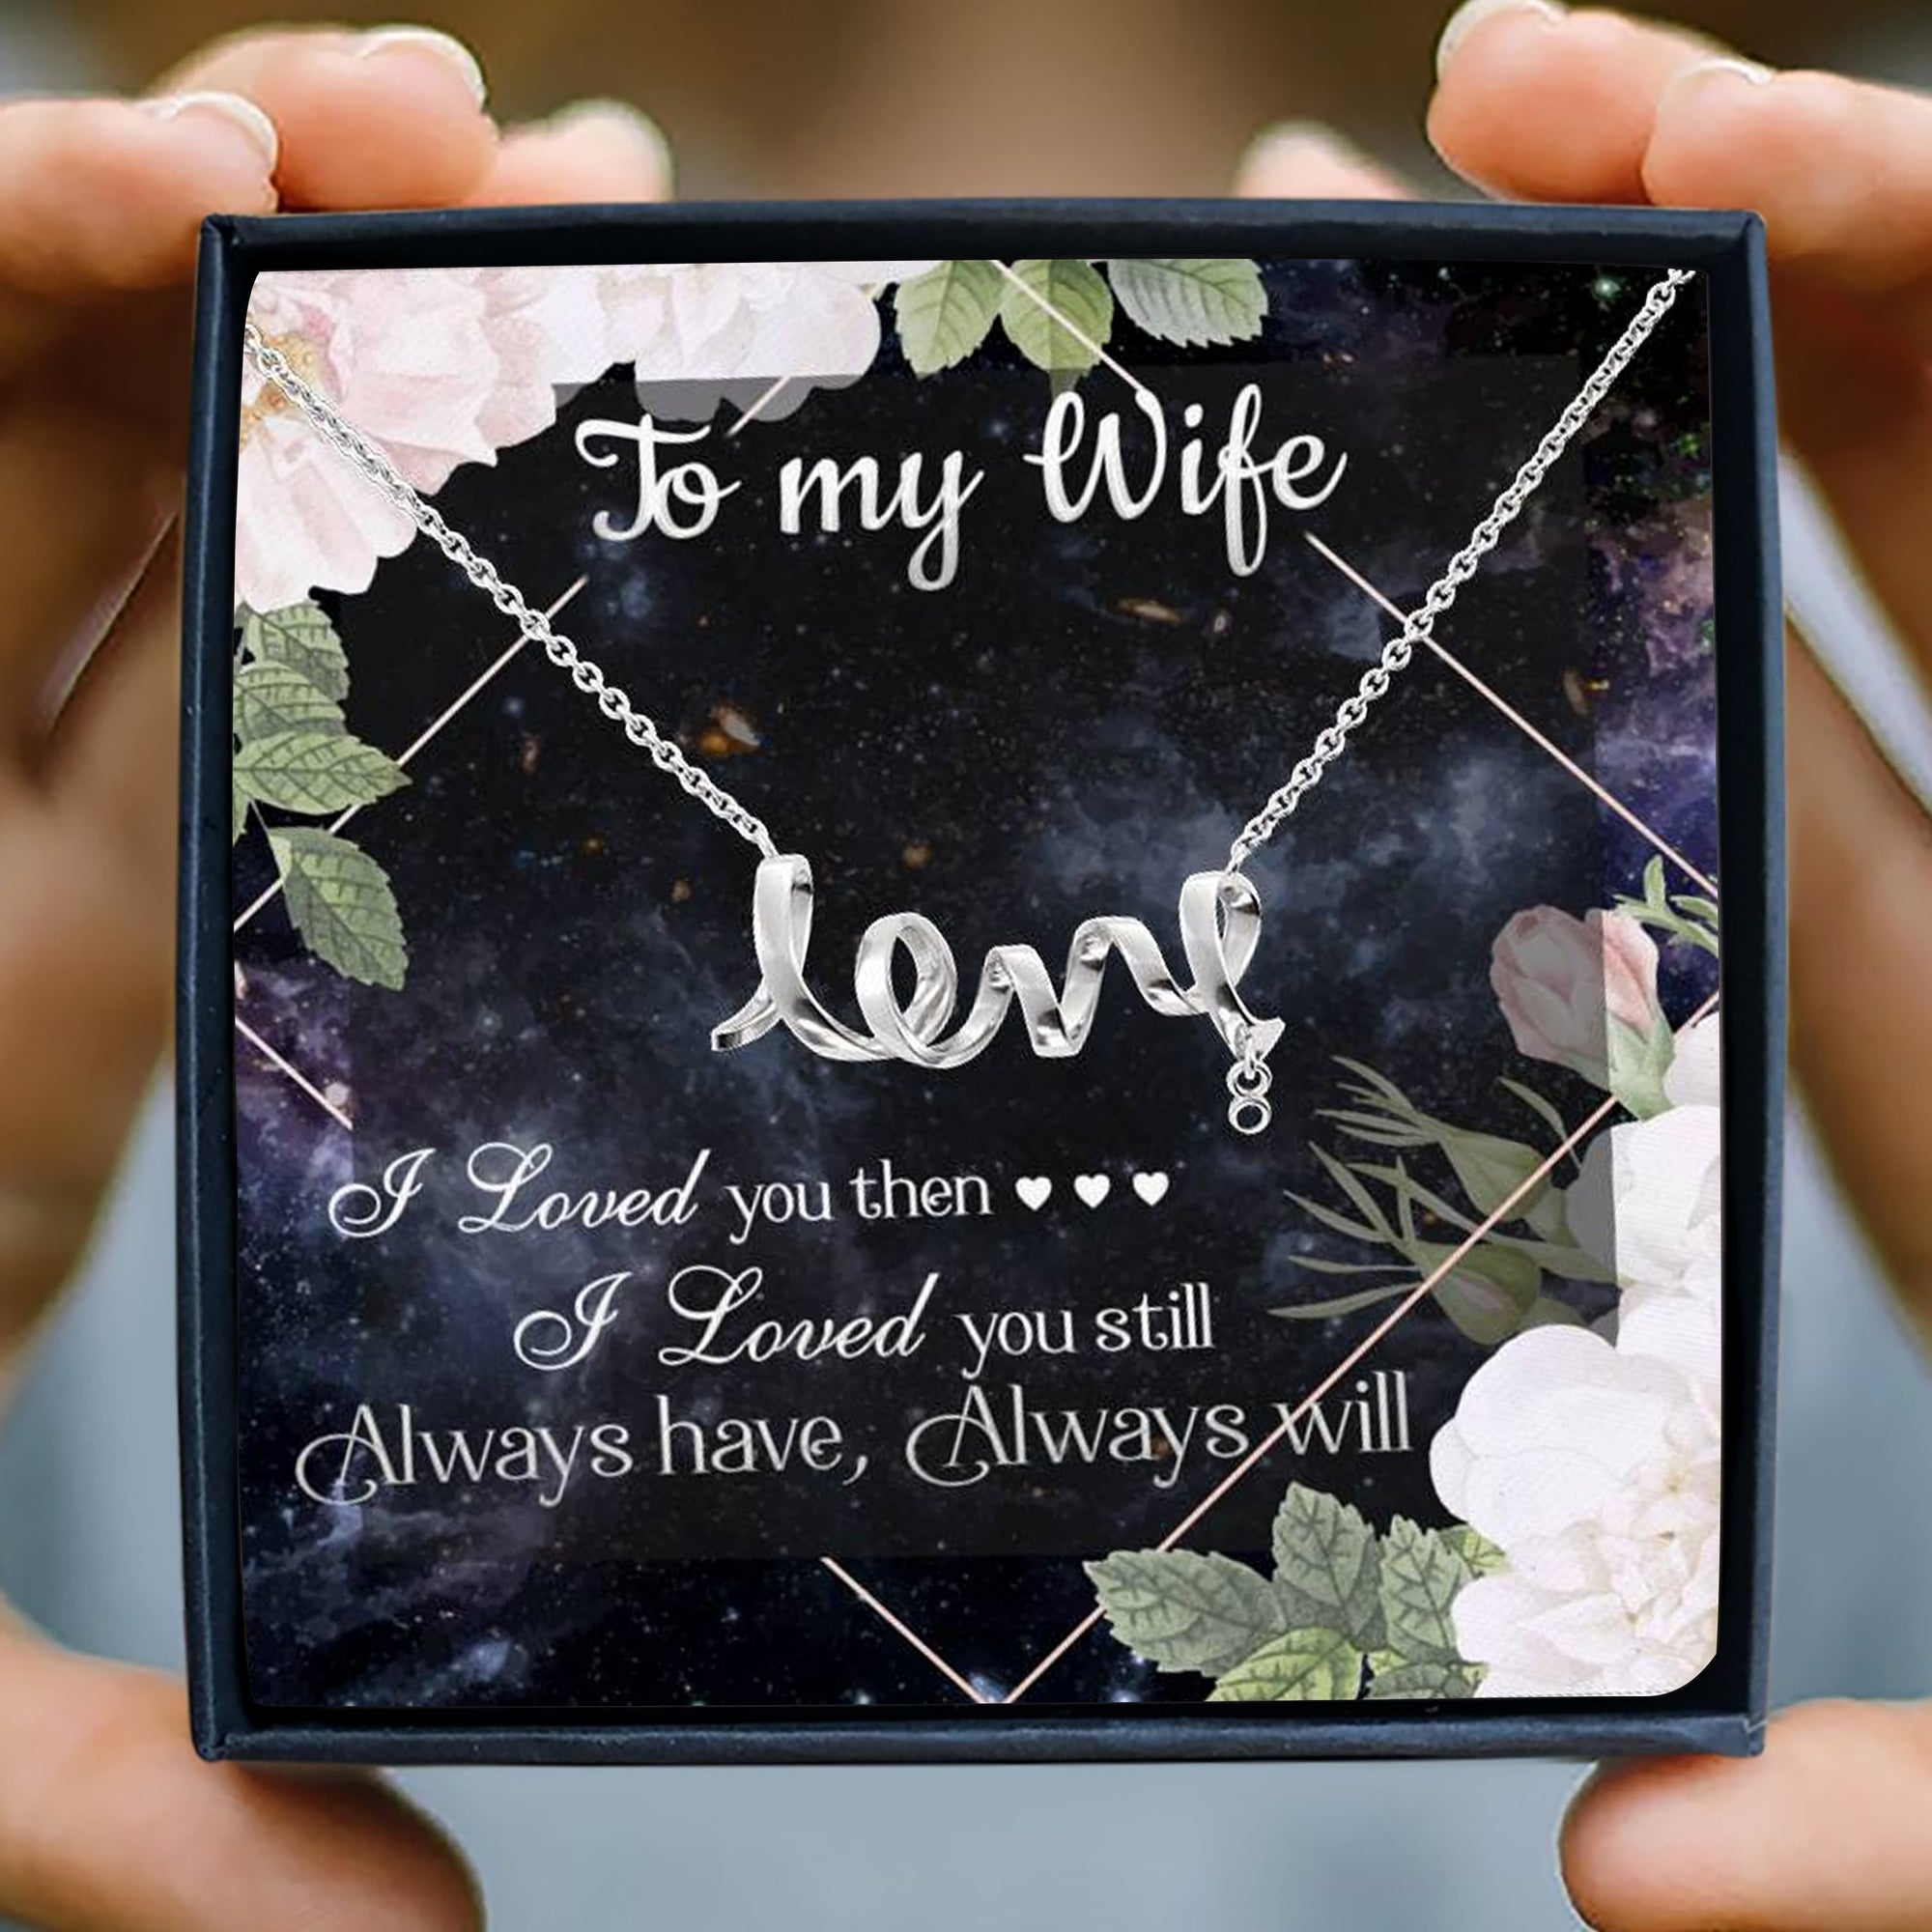 To my wife necklace - I loved you then, I love you still - Gift for her, anniversary gifts - Scripted love necklace with message card - 8920